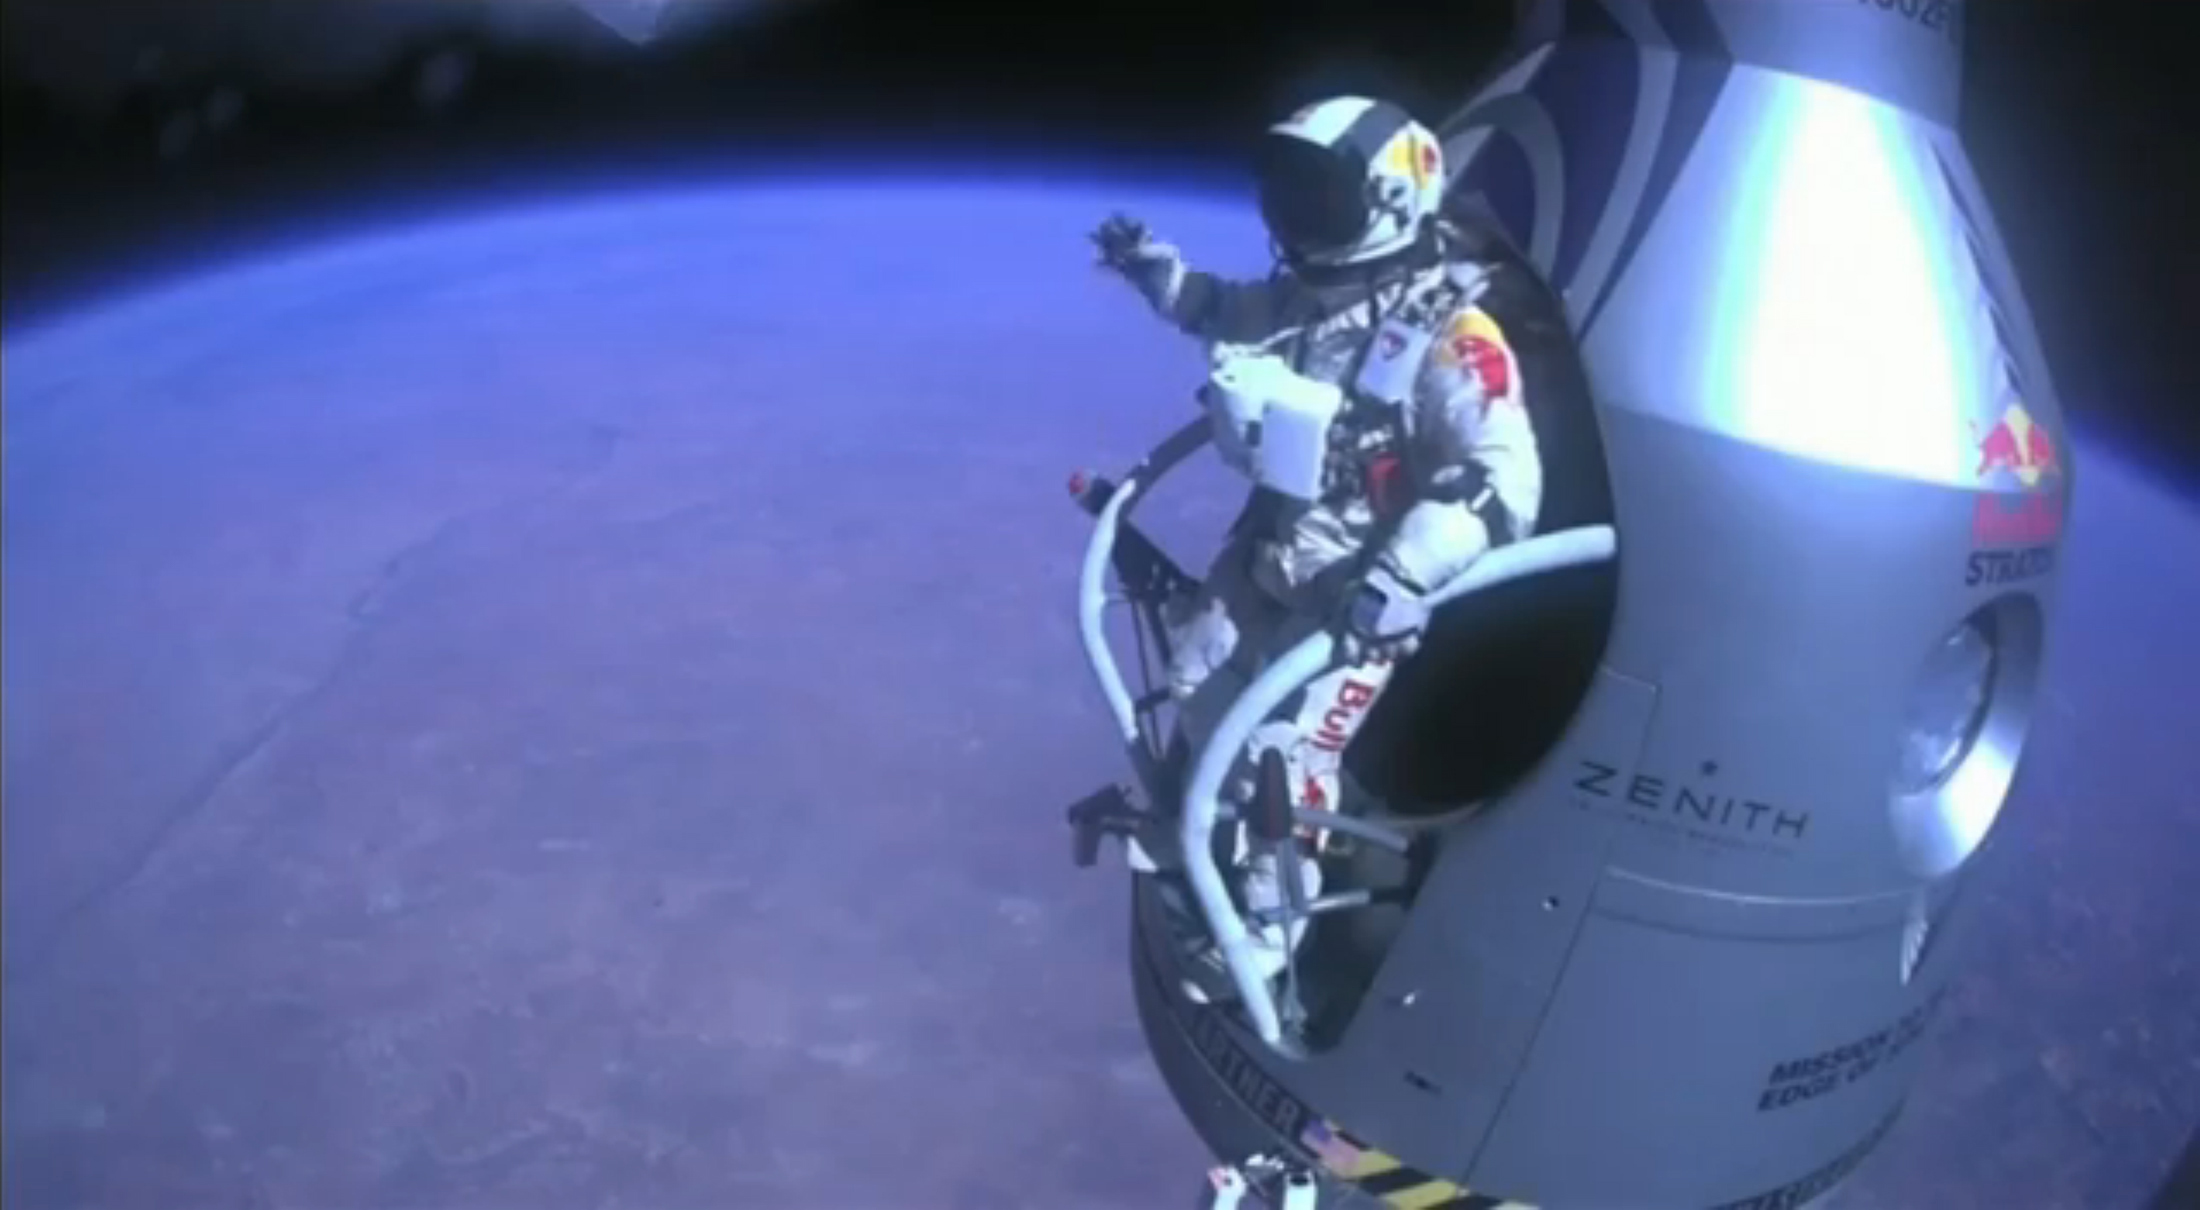 Handout of pilot Felix Baumgartner of Austria exiting his capsule as he begins his record-setting skydive over Roswell